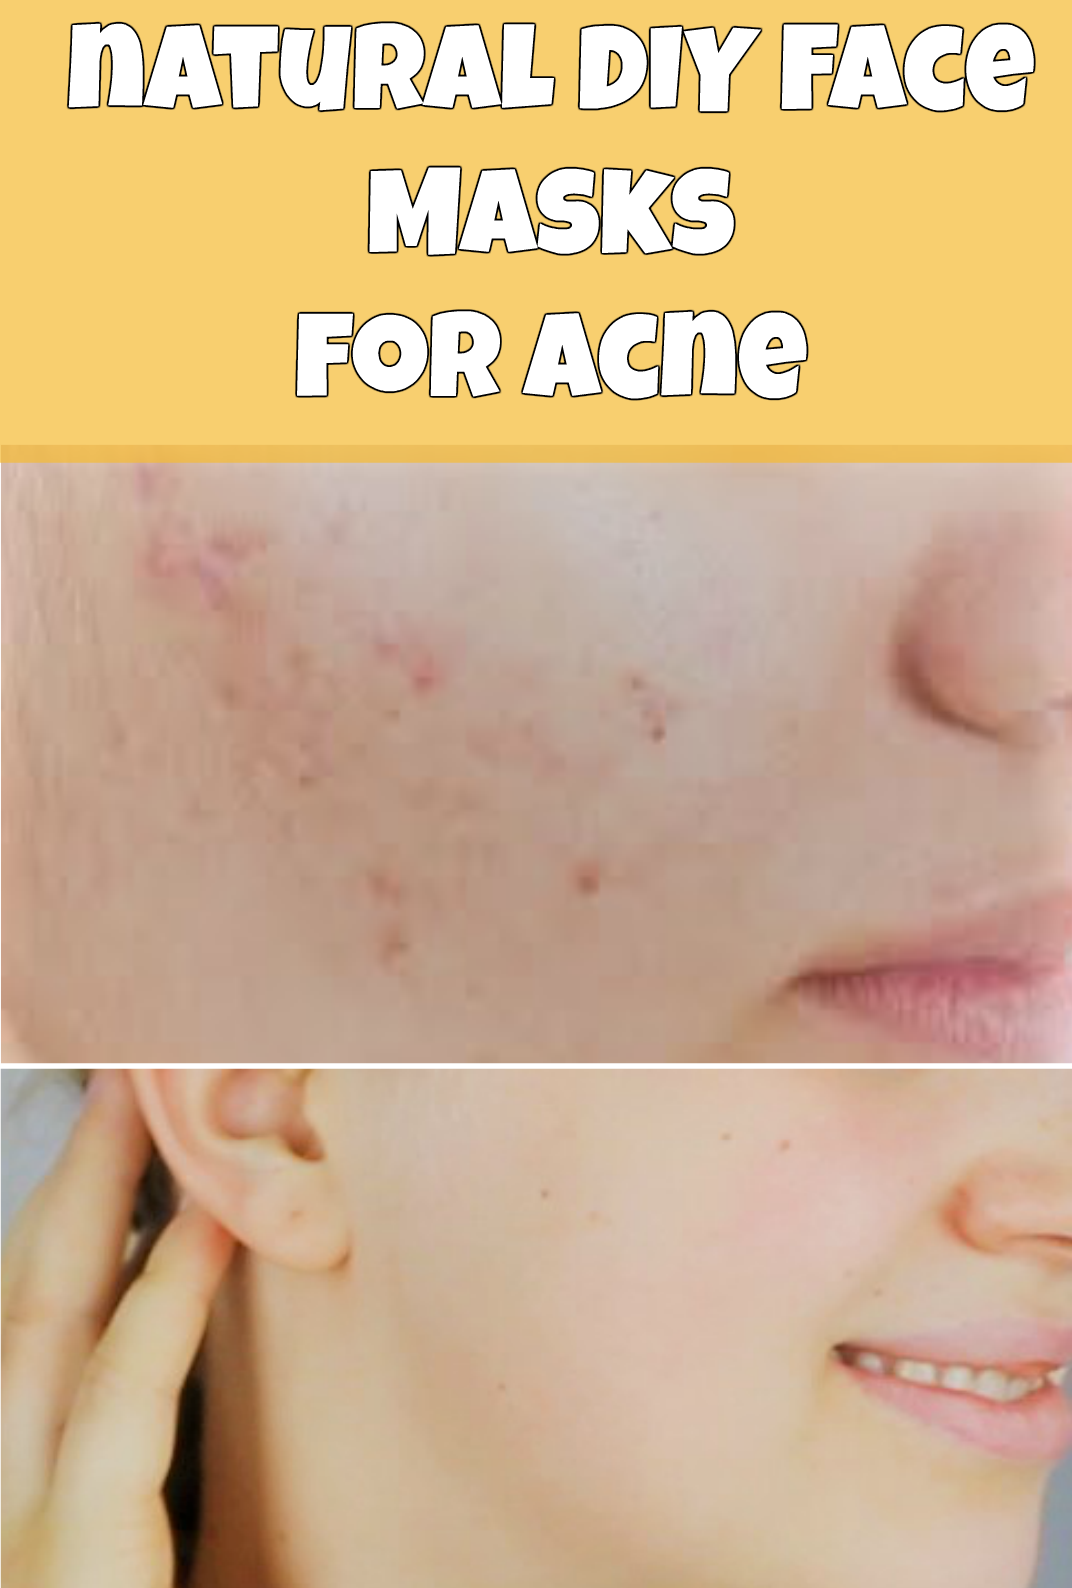 Anti Aging Cream Lotion Pinterest Homemade Face Klara Hylaronic Lip Mask Natural Diy Masks For Acne Prone Oily Skin Dry No More At Home Get Rid Of Remove Naturally